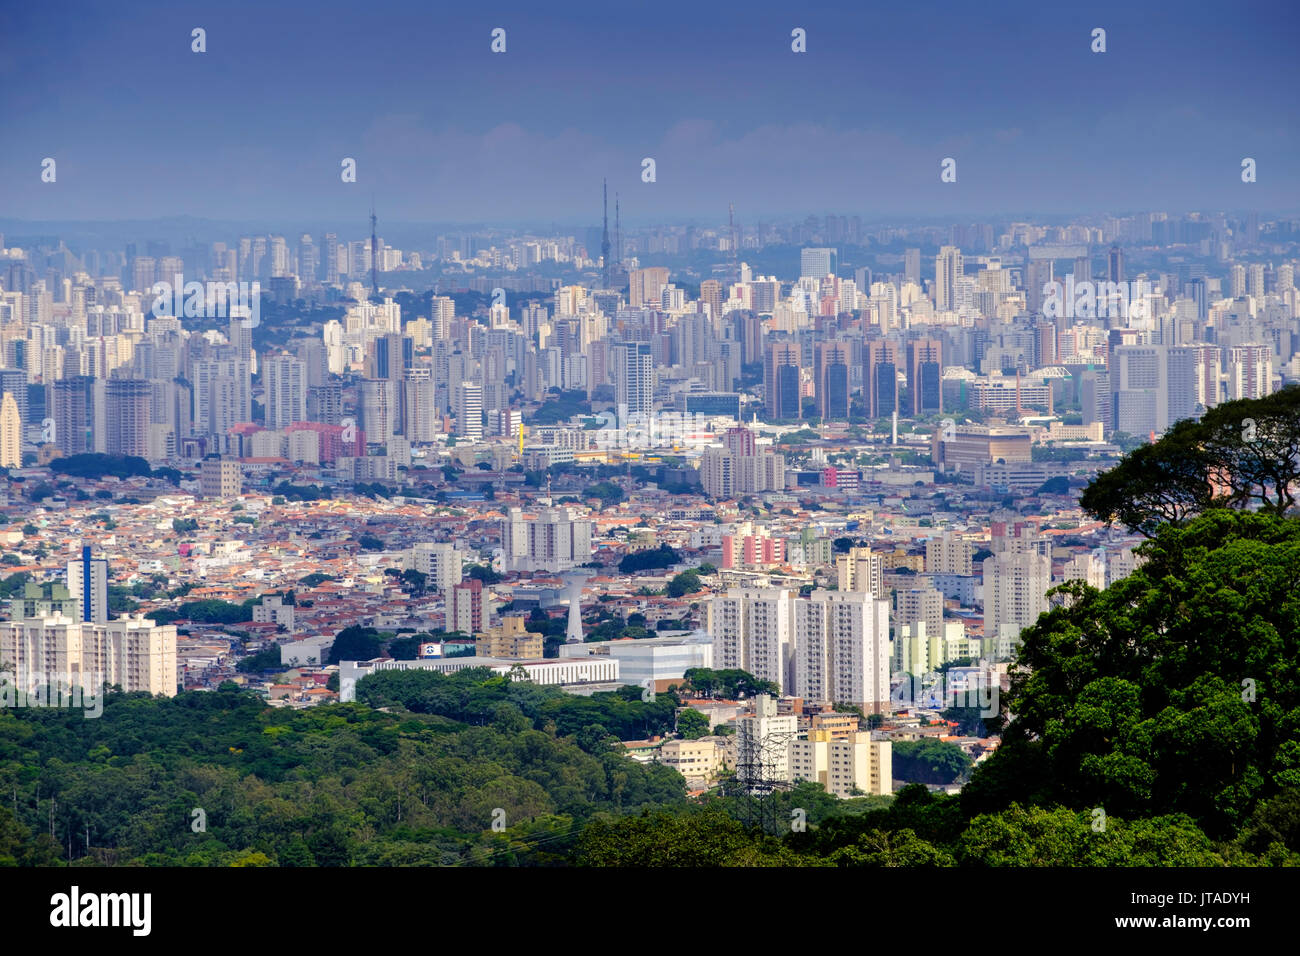 Central Sao Paulo from the rainforest of the Serra da Cantareira State Park, Sao Paulo, Brazil - Stock Image